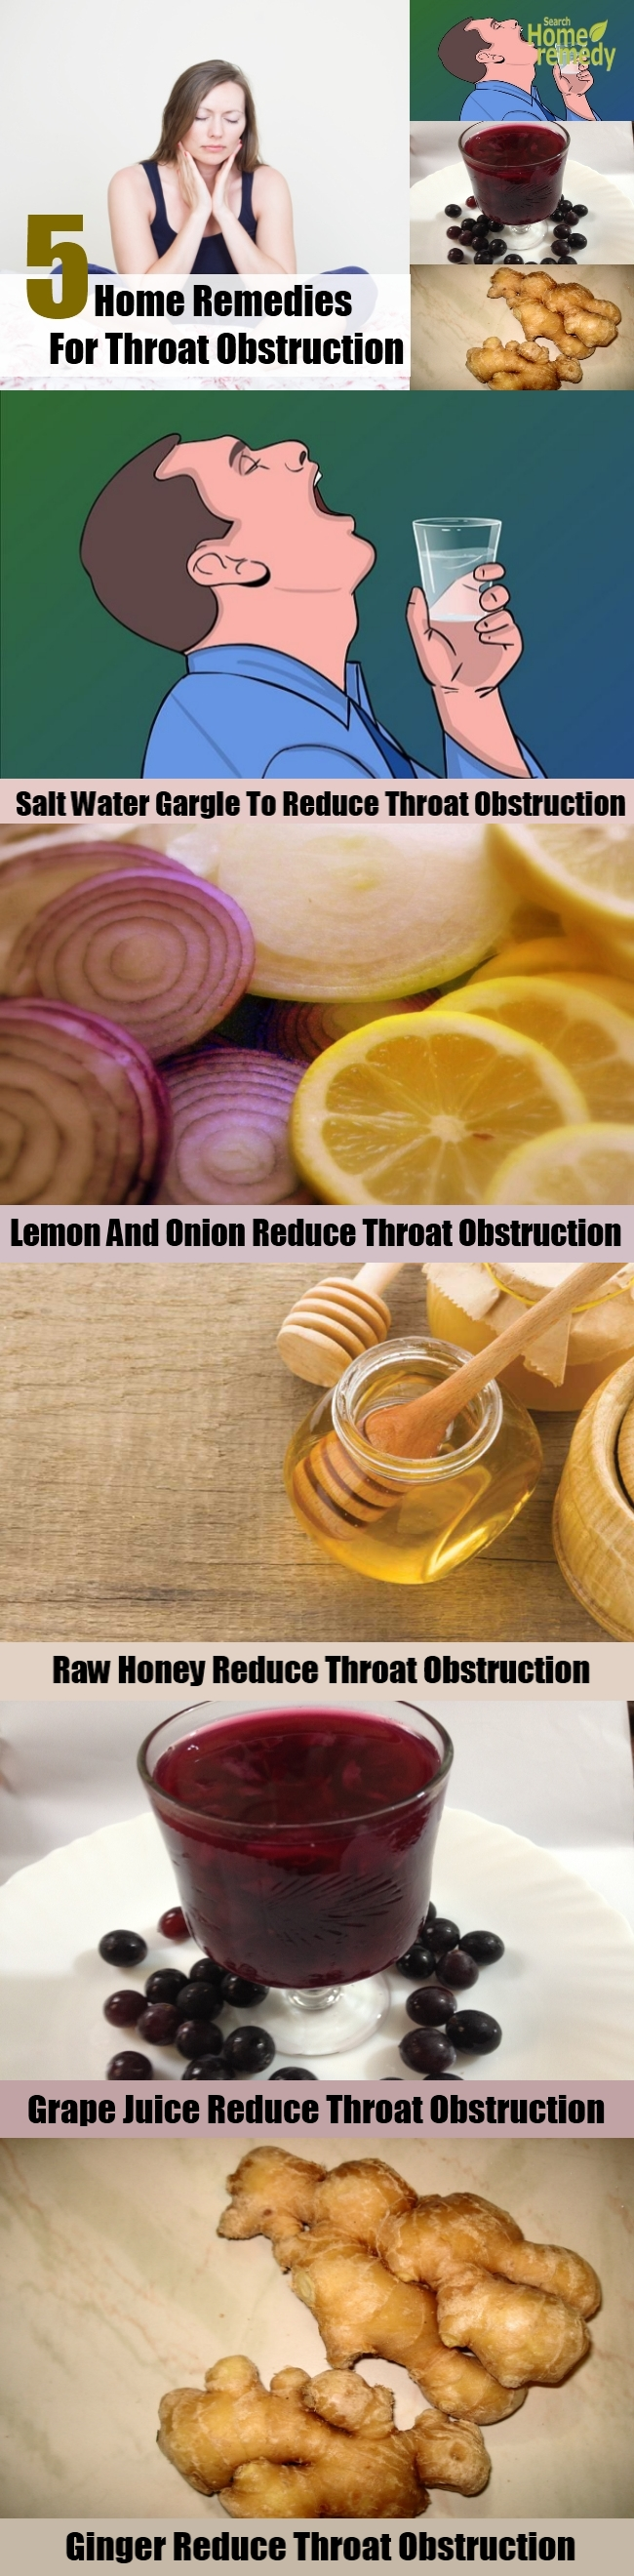 5 Home Remedies For Throat Obstruction